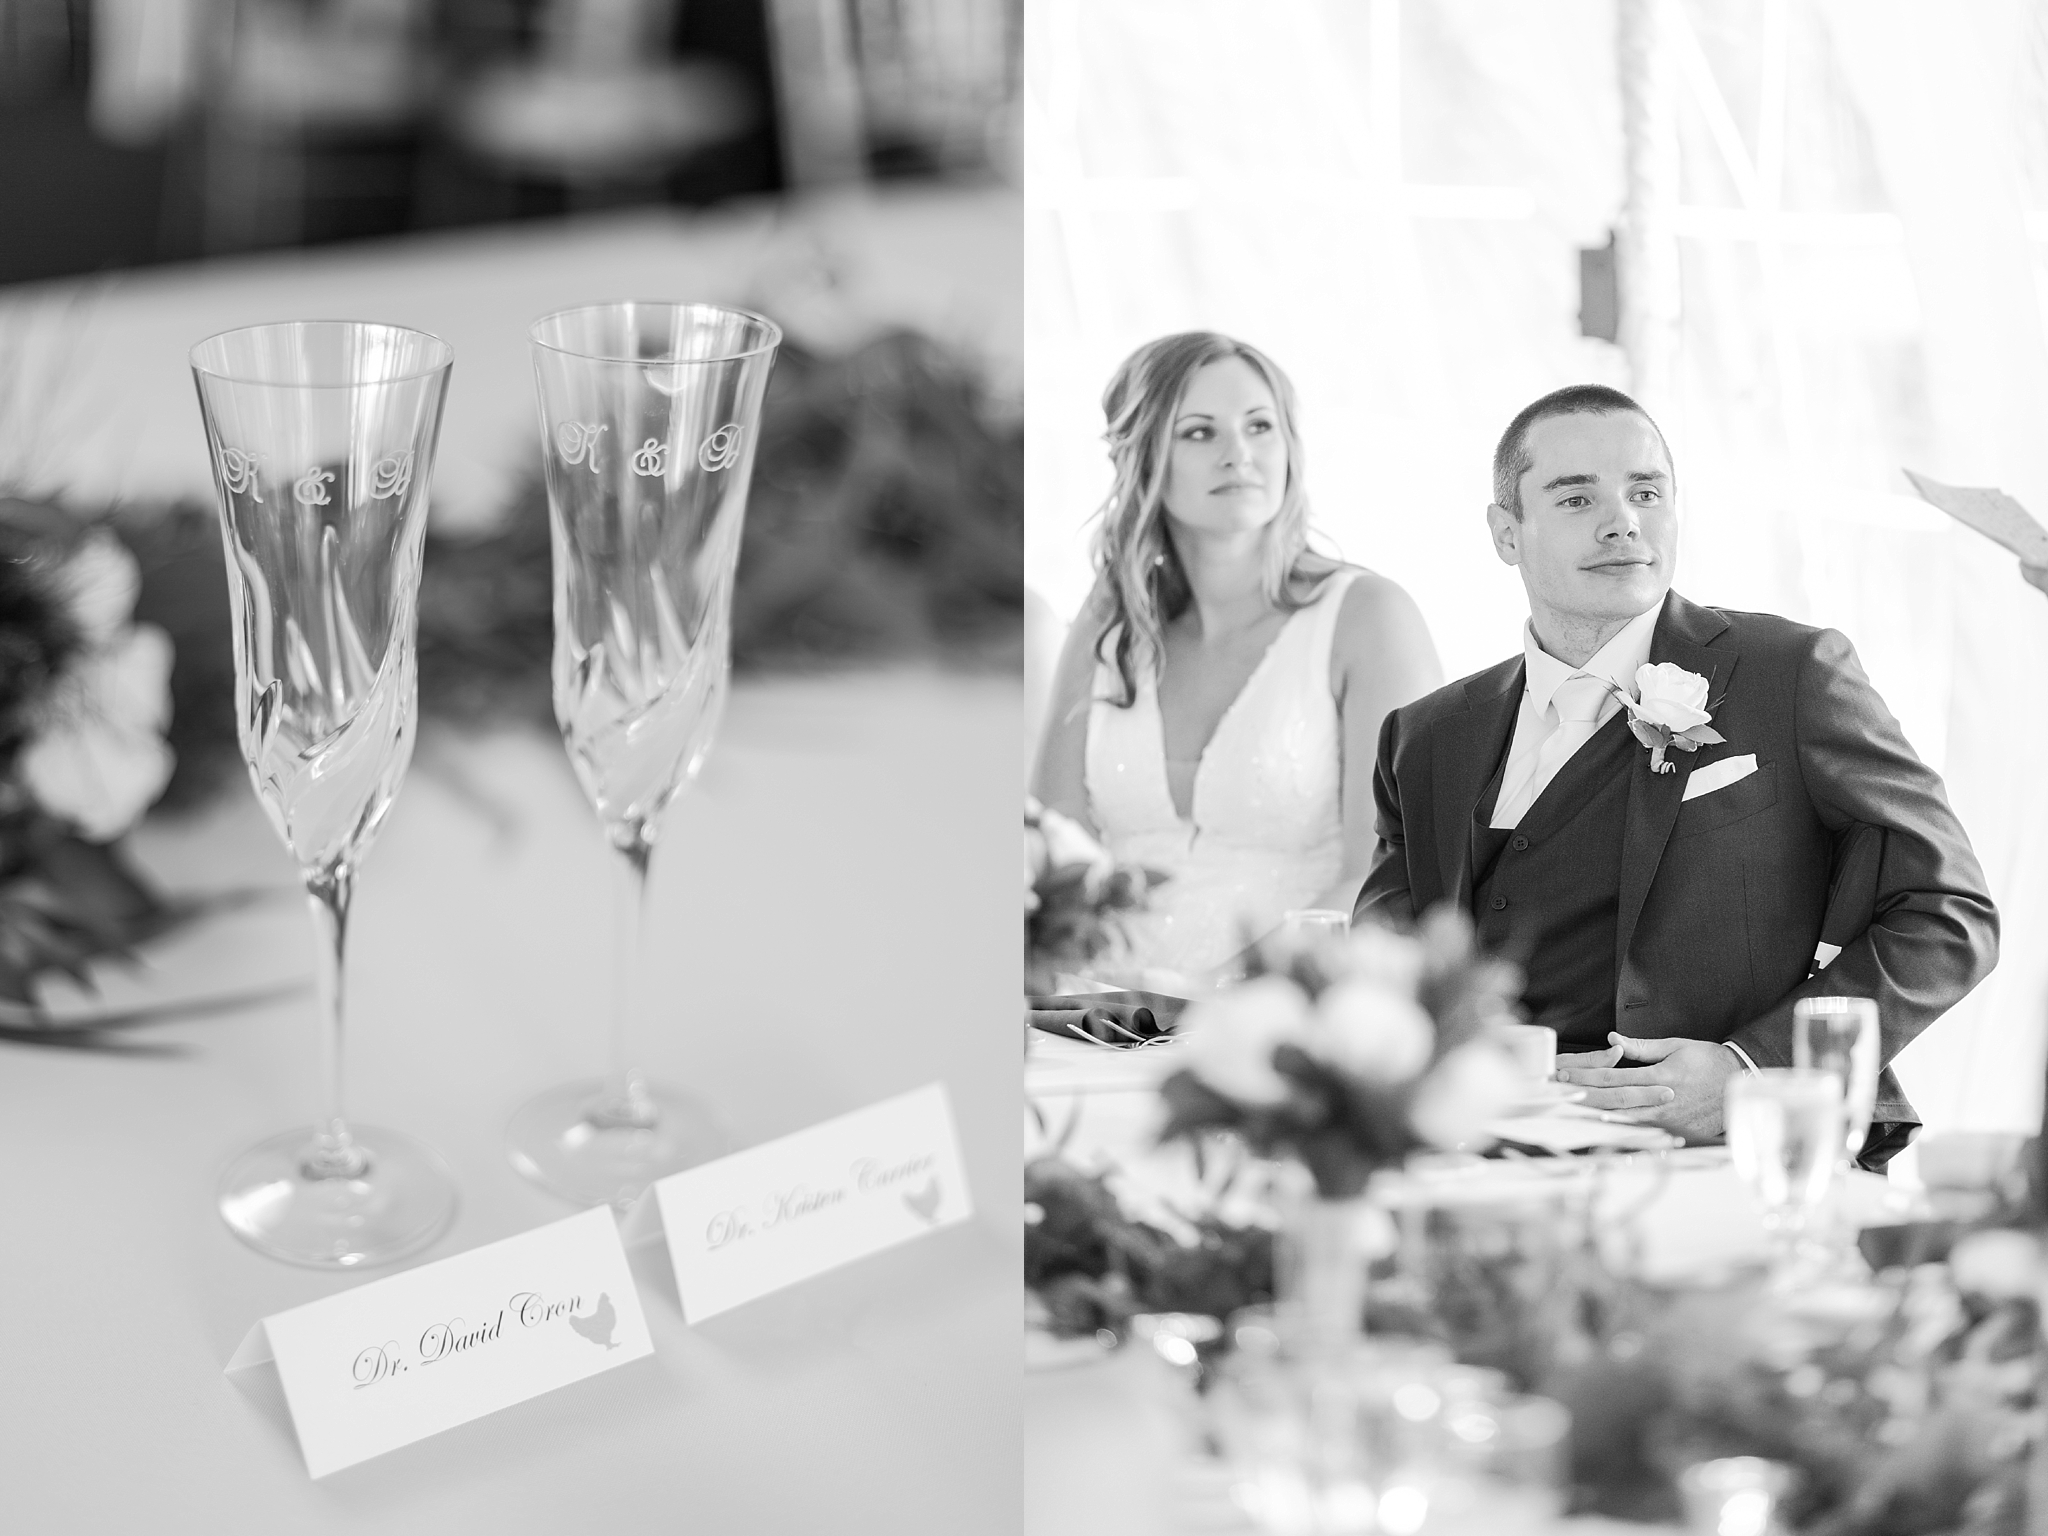 joyful-candid-laid-back-wedding-photos-in-ann-arbor-michigan-and-at-the-eagle-crest-golf-resort-by-courtney-carolyn-photography_0099.jpg